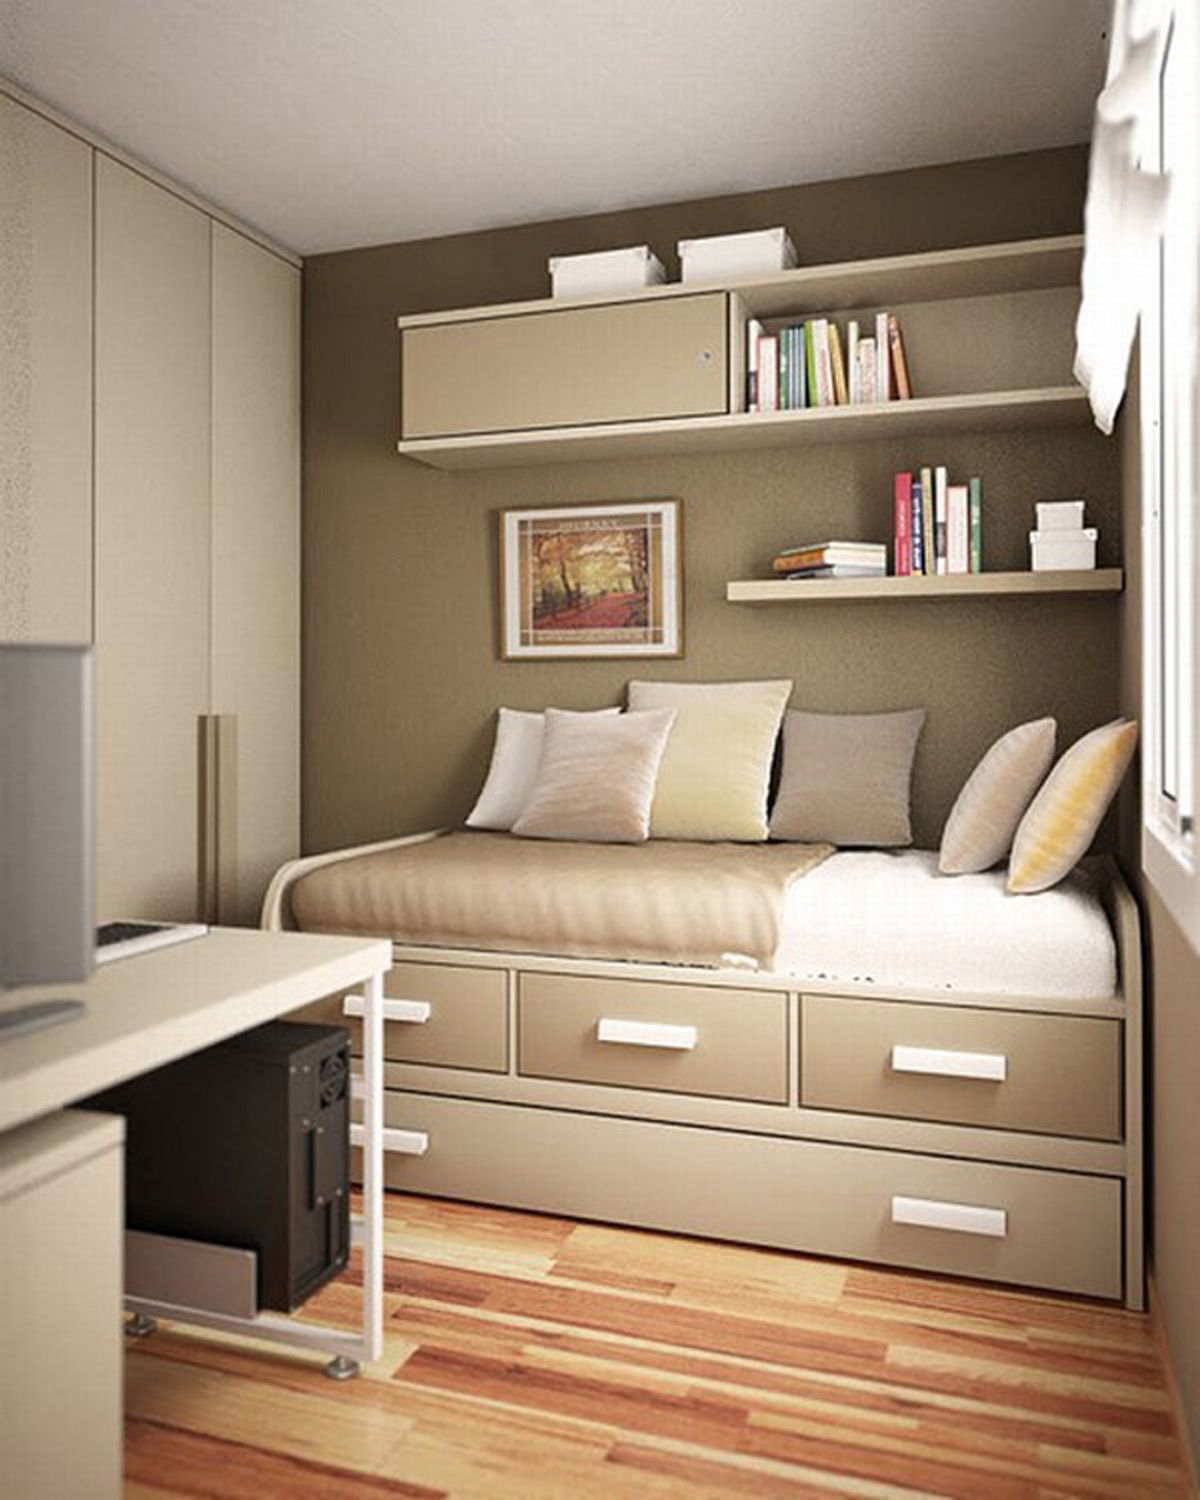 contemporary small bedroom ideas - Bedroom Ideas For A Small Bedroom